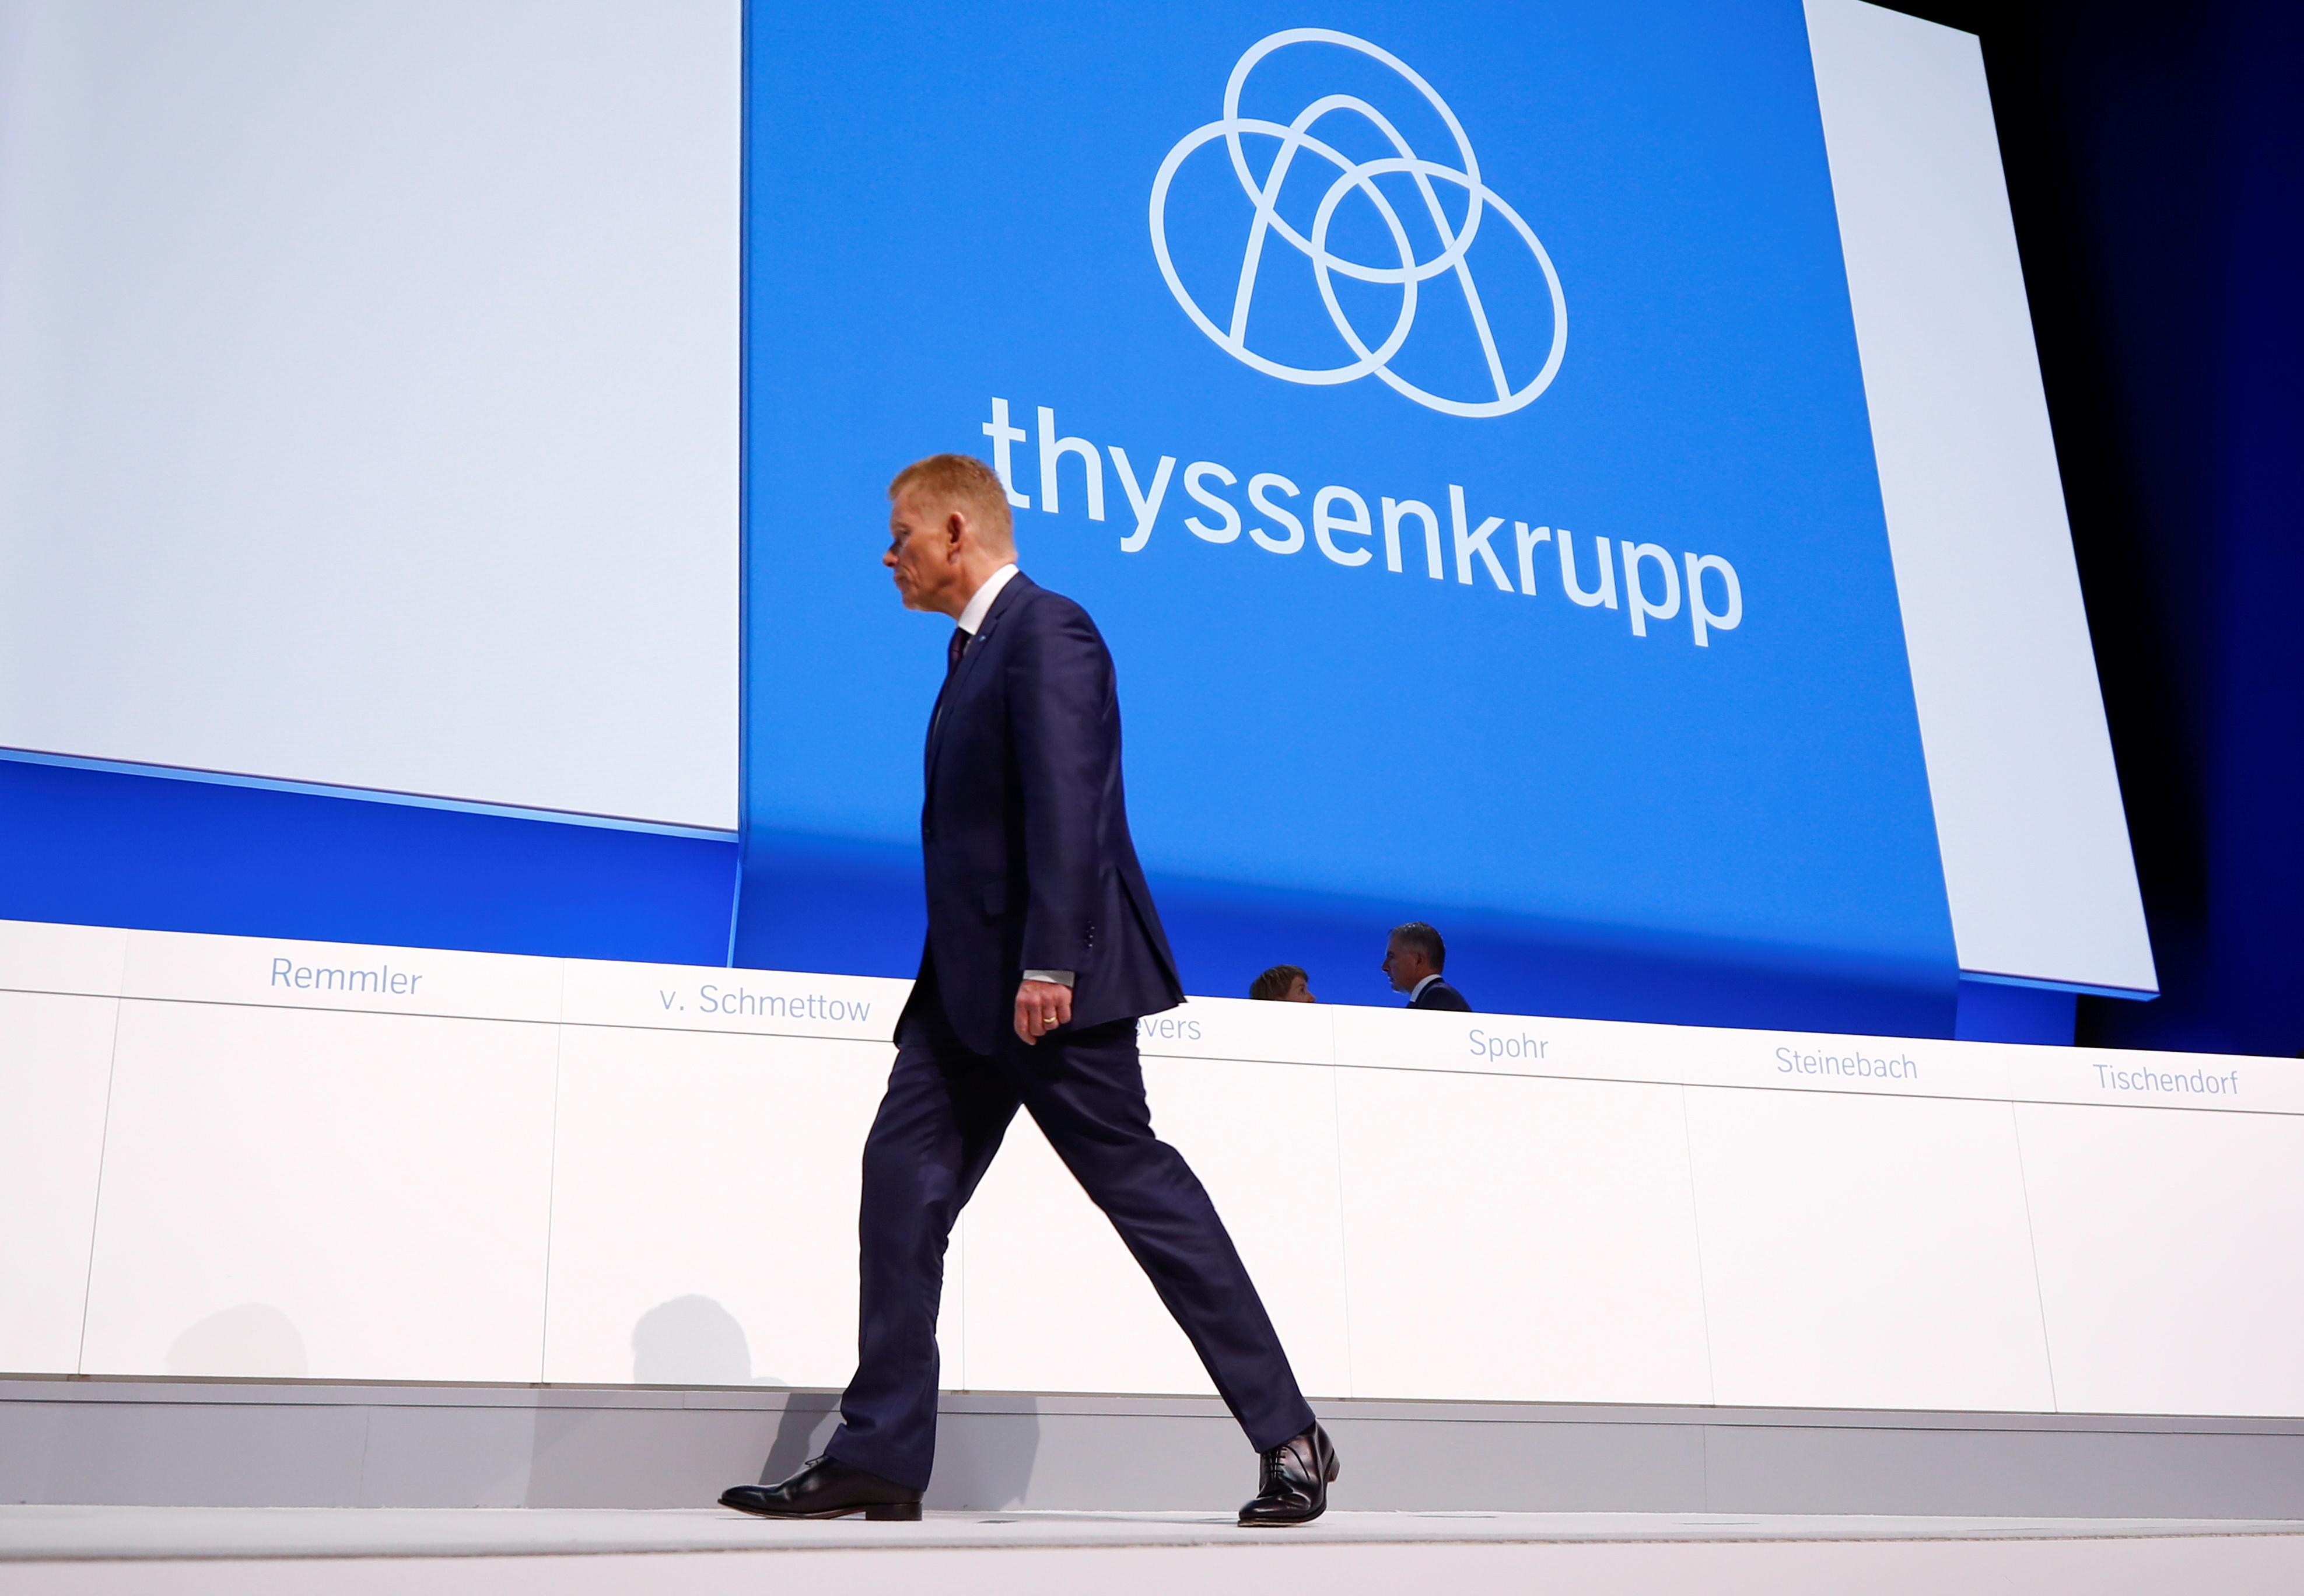 Thyssenkrupp faces more turmoil as CEO Kerkhoff set to leave